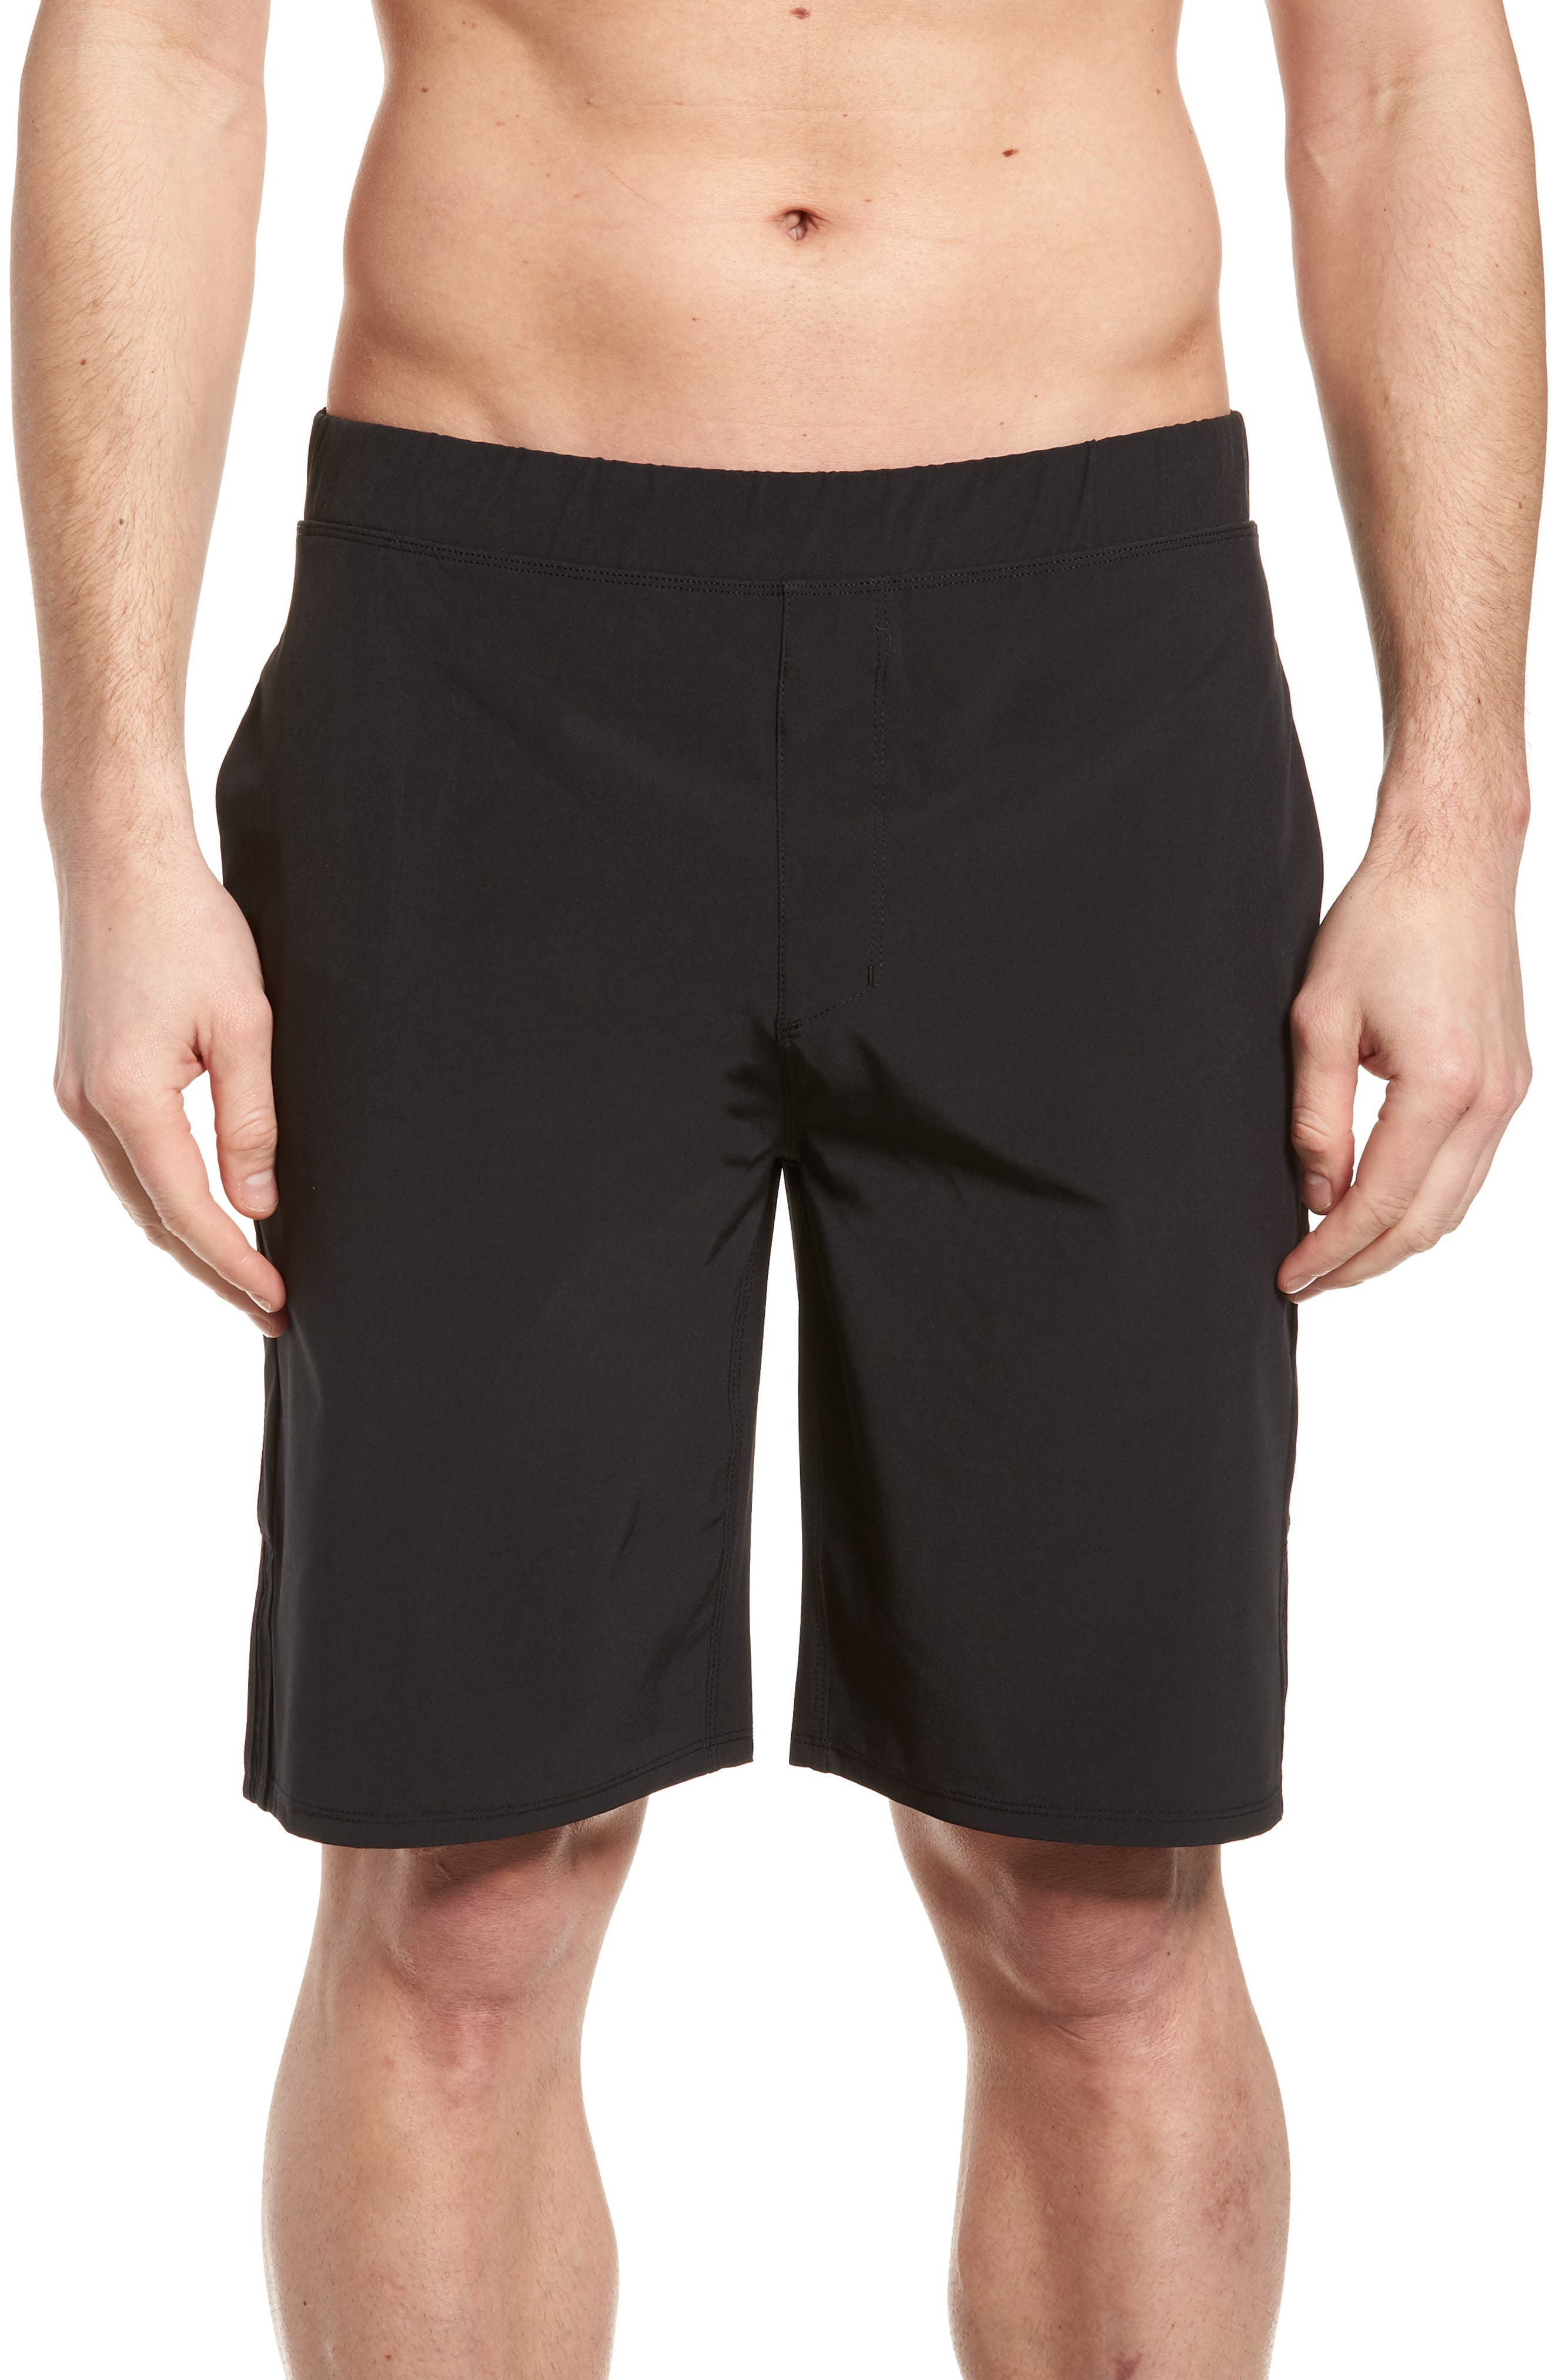 Hurley Alpha Trainer 2.0 18.5 Inch Shorts in Obsidian